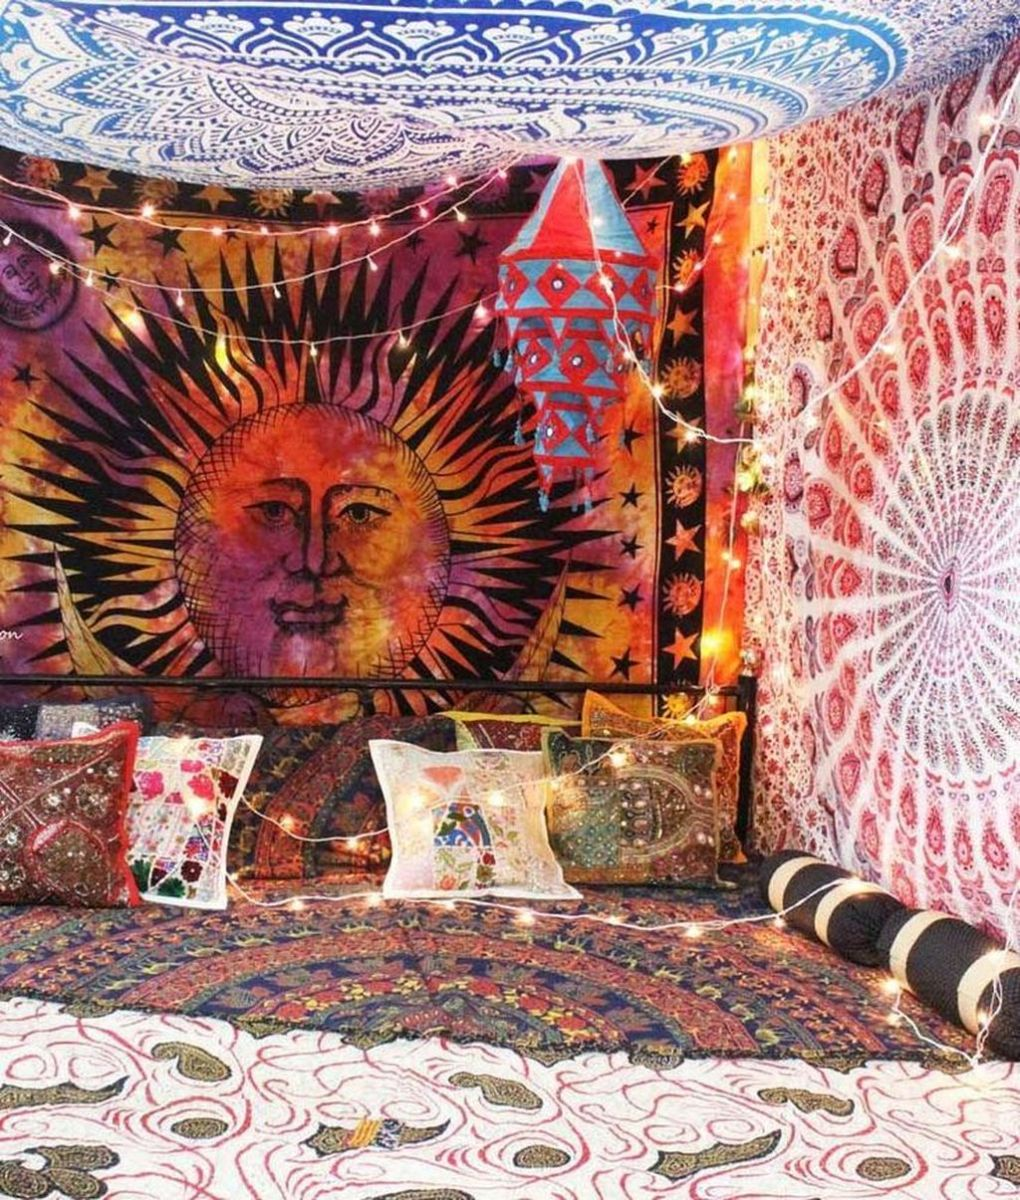 Stunning Hippie Room Decor Ideas You Never Seen Before 42